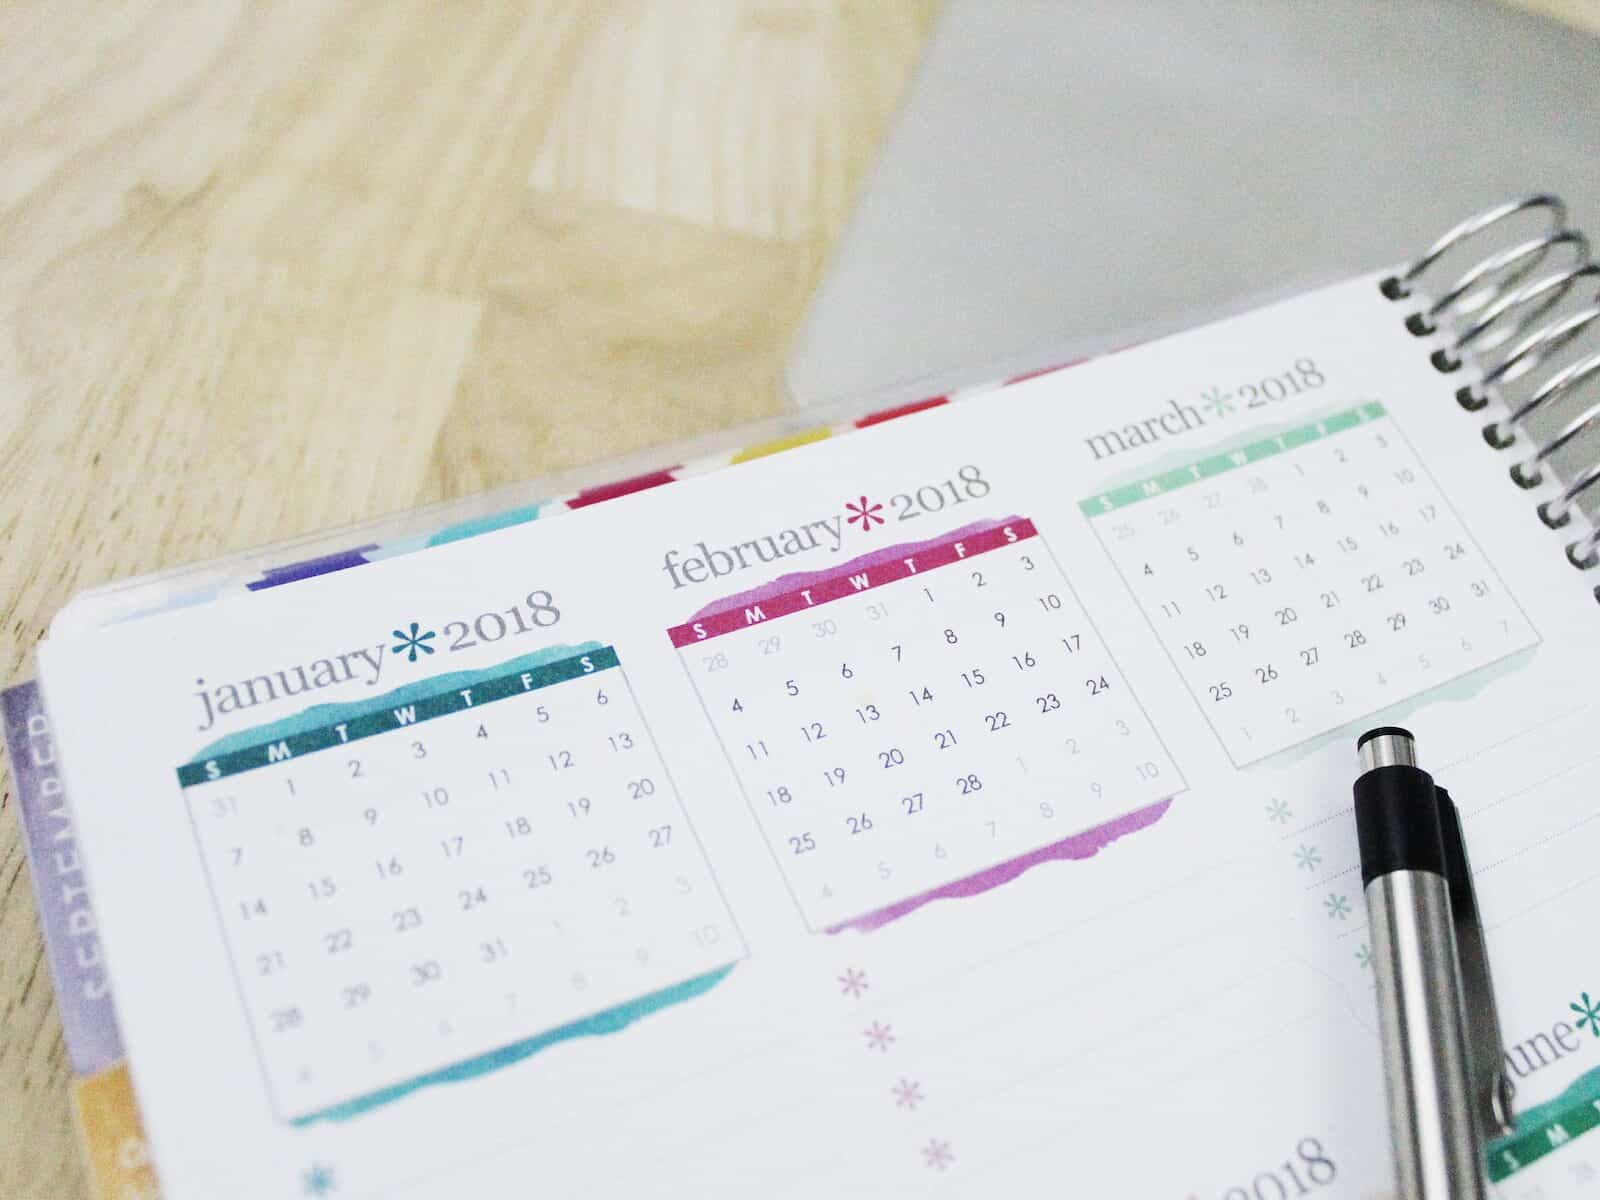 Calendar and pen on wooden table.